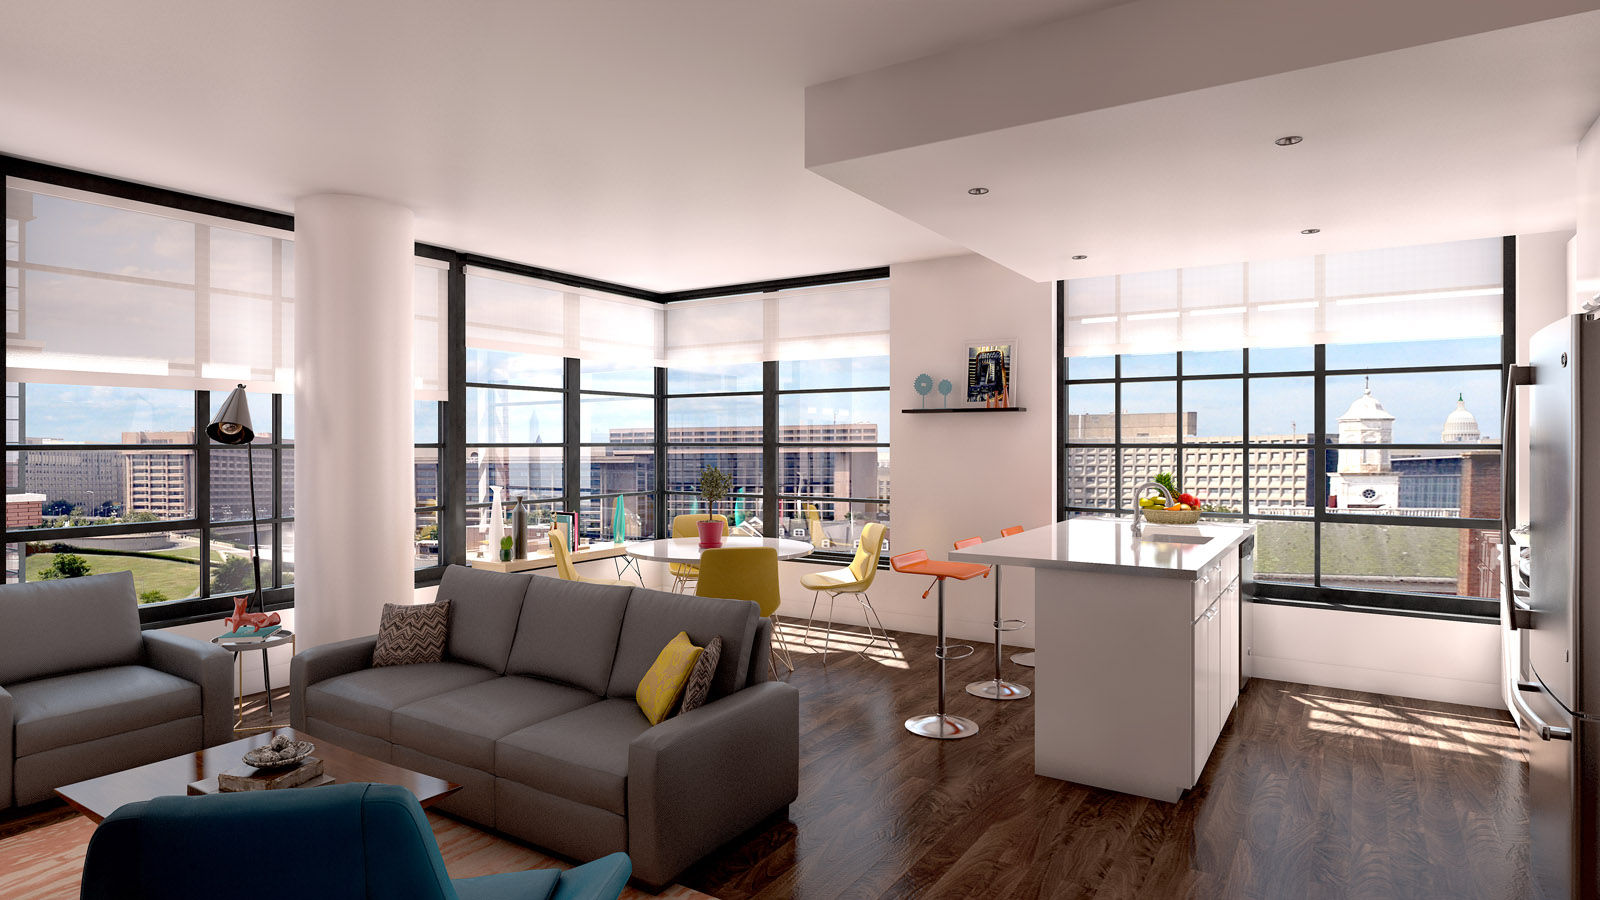 This image shows the interior of one of the units inside Incanto Apartments, one of two apartment buildings constructe as part of the mile-long redevelopment of the Southwest Waterfront, called The Wharf. Two condo buildings were also built. As many as 2,000 people will live in the 900 new housing units. (Courtesy PN Hoffman)